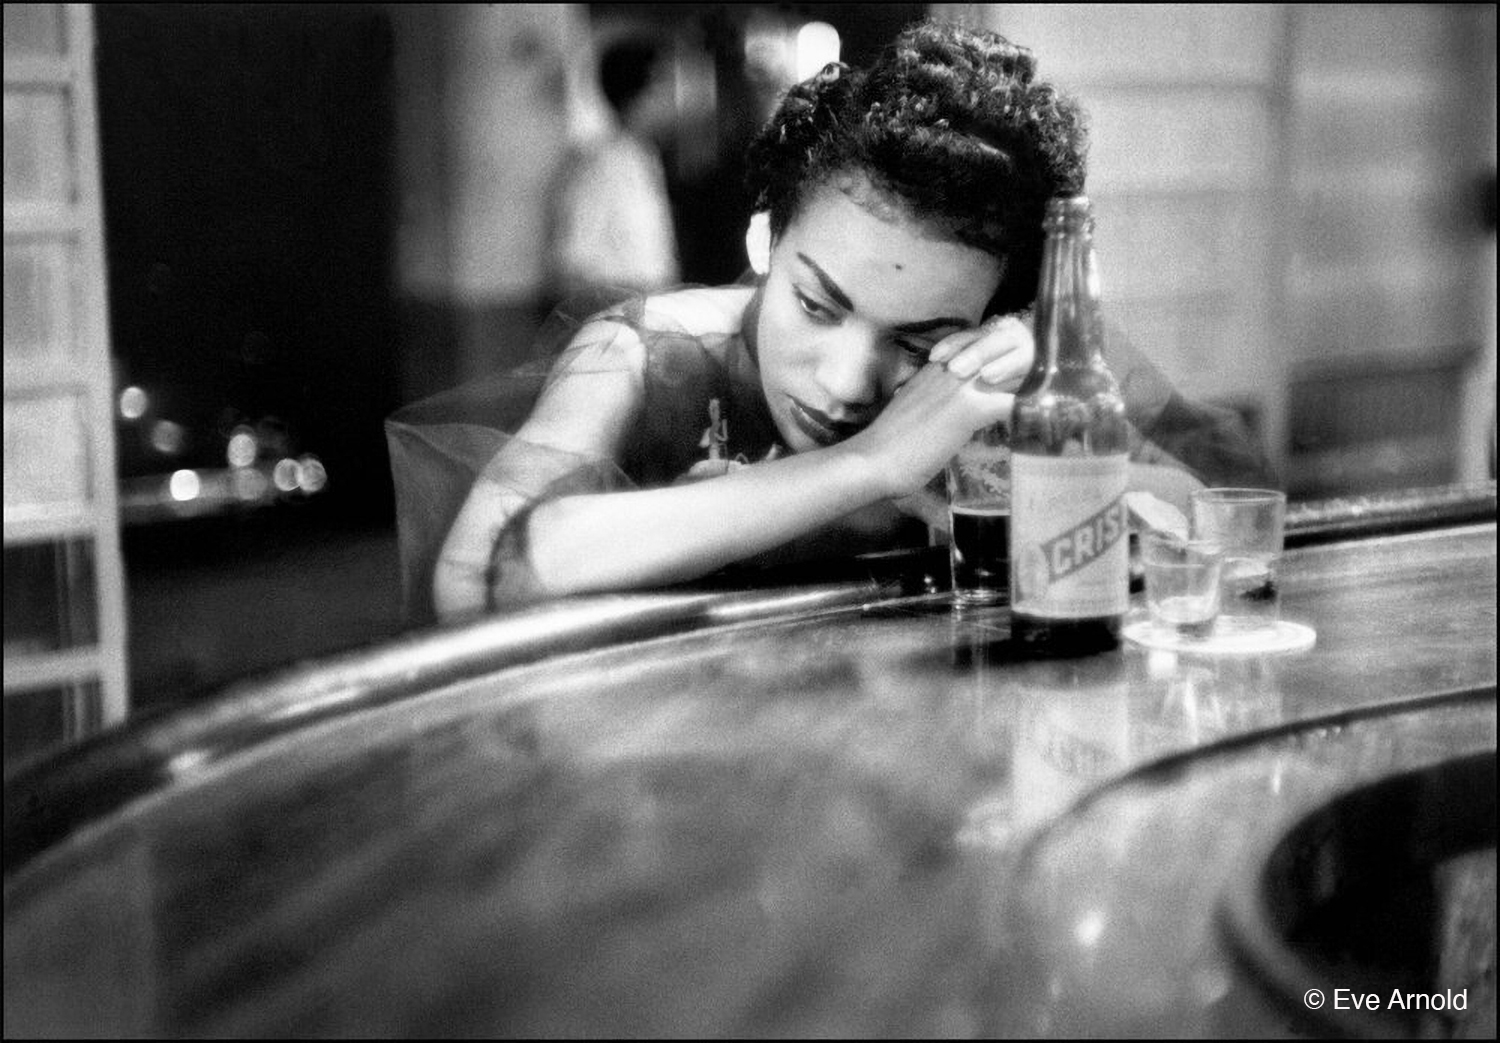 Photo by Eve Arnold of bar girl in Cuba